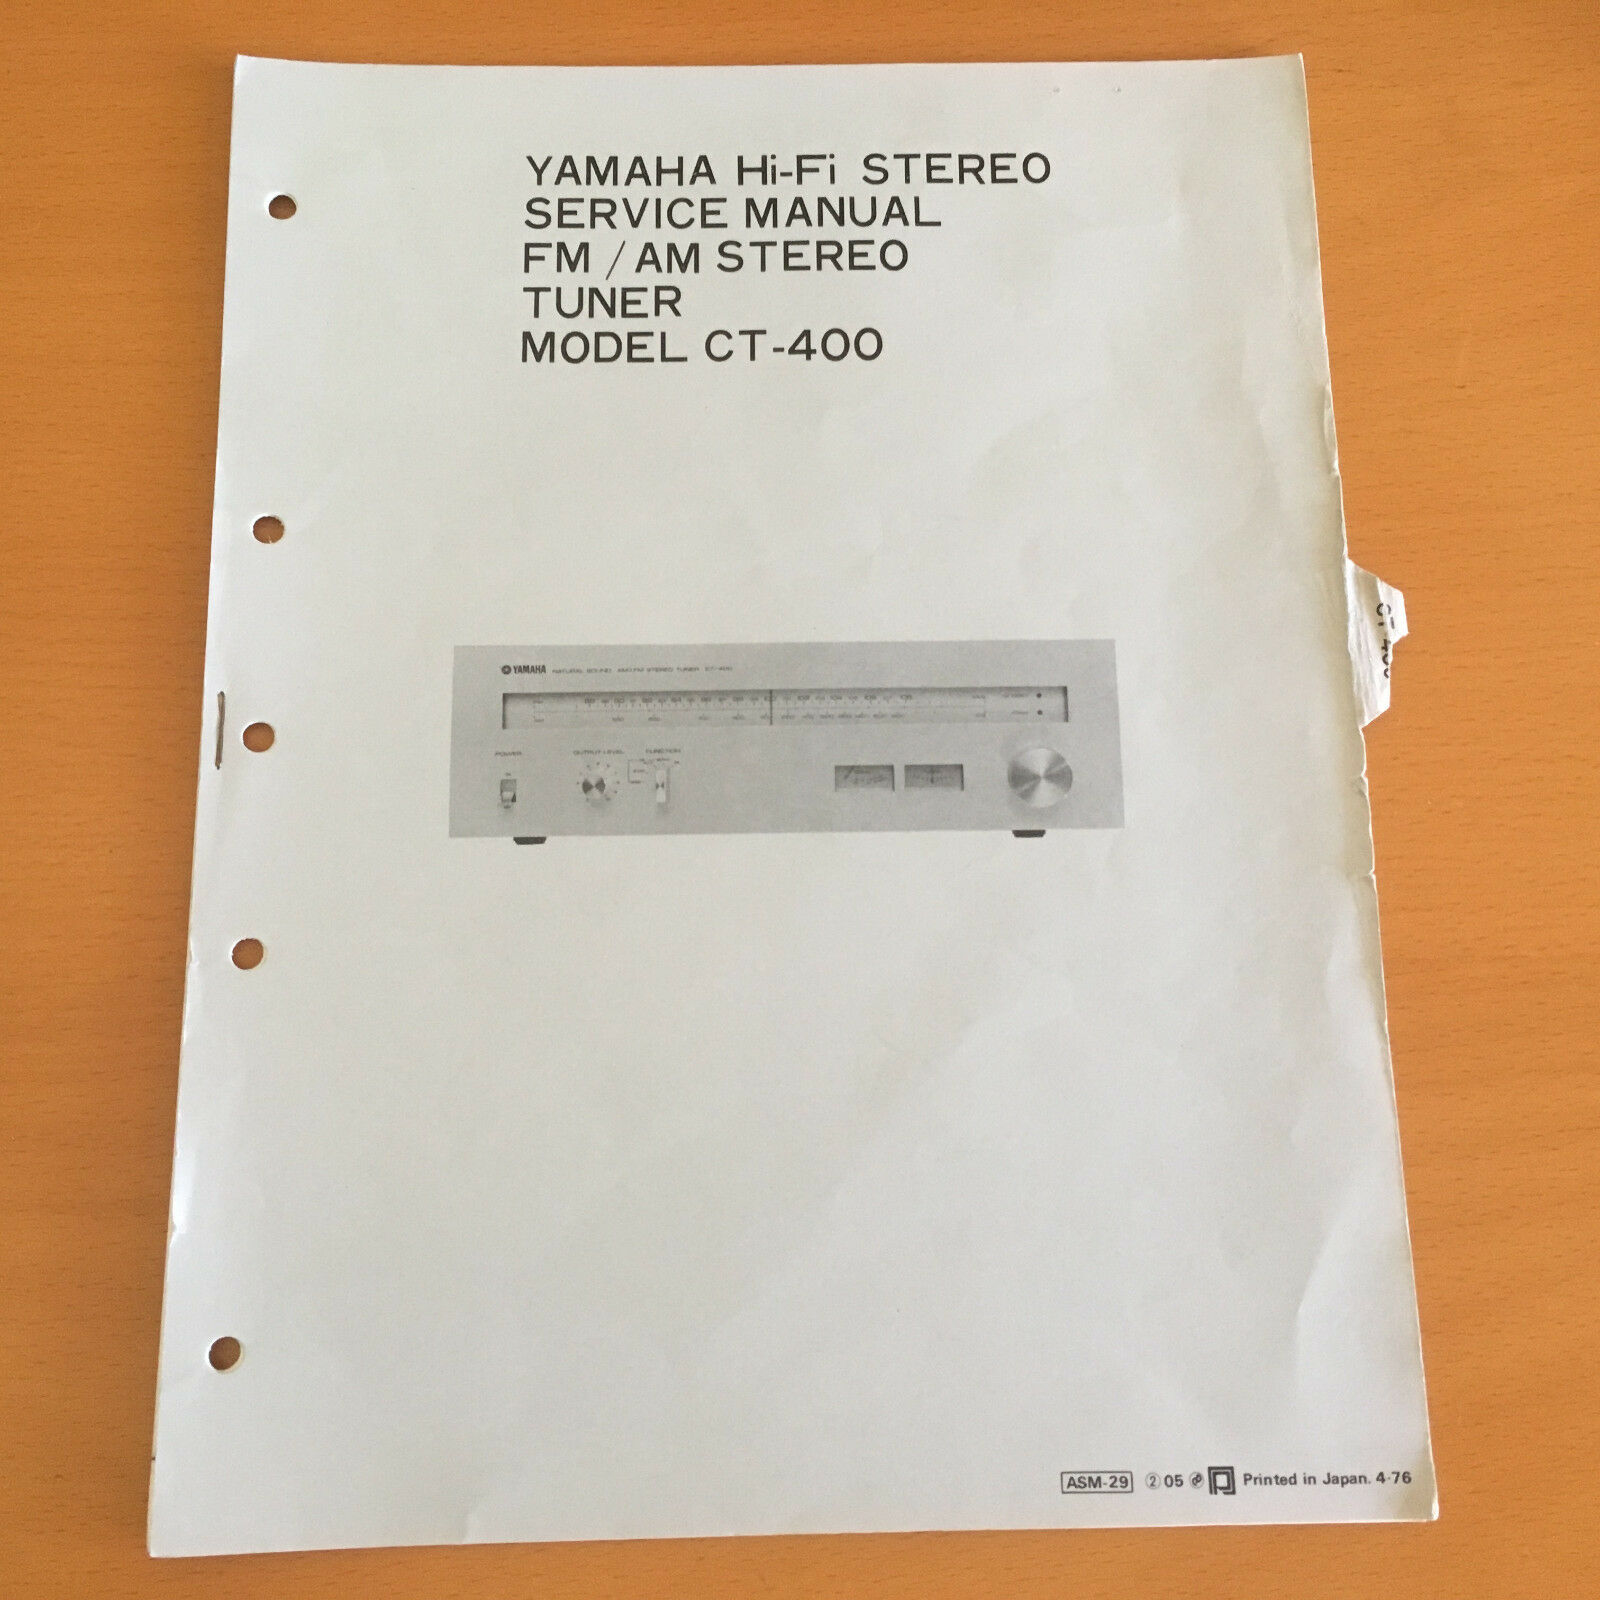 Yamaha CT-400 Tuner Repair Service Manual & Schematics Factory Original!  Rare